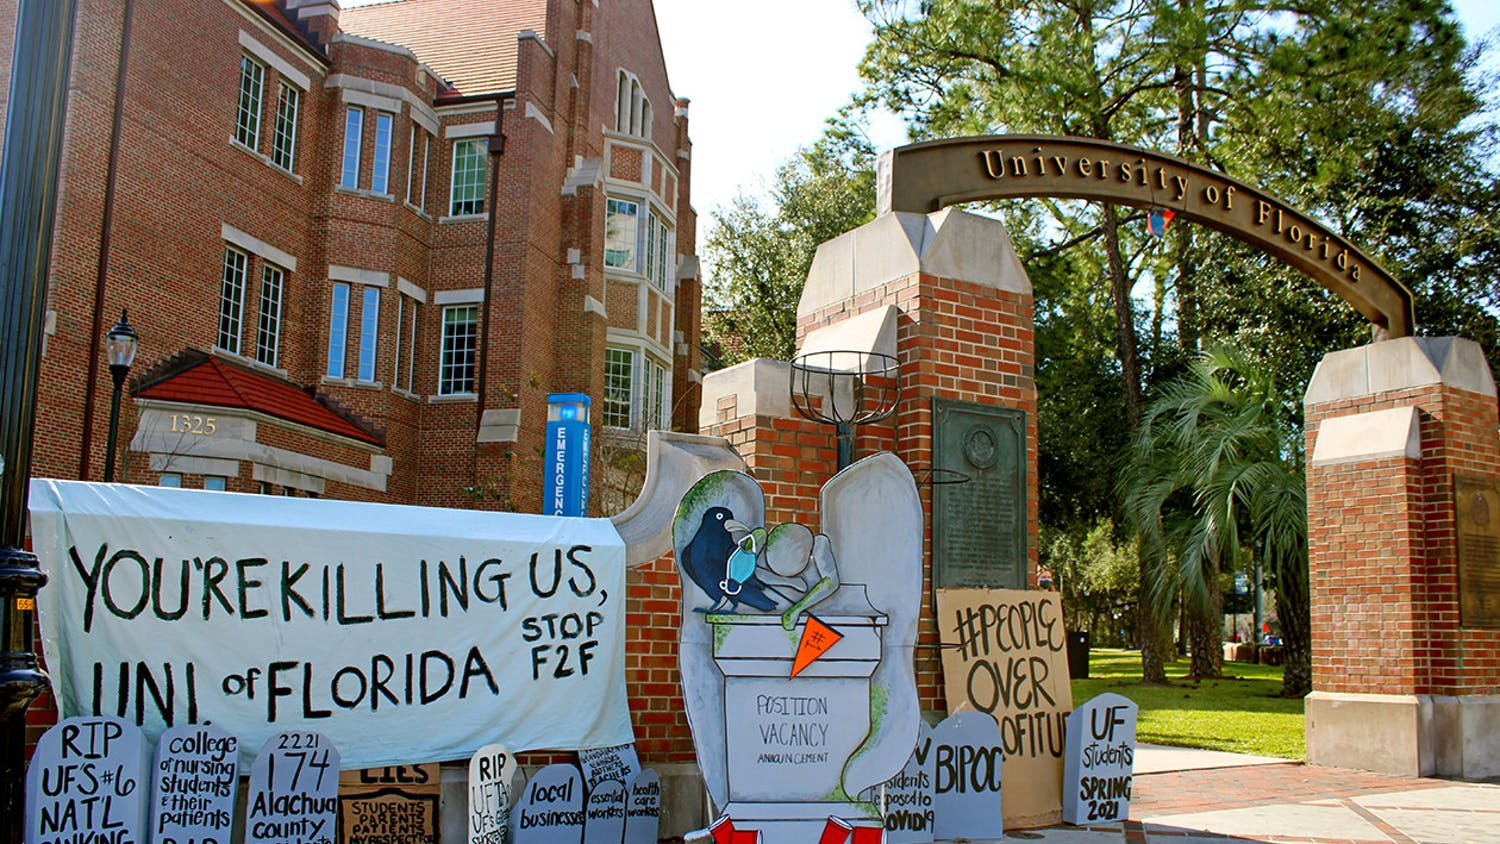 A collection of tombstone shaped signs and a banner calling for the end of in-person classes at the University of Florida was set-up on the corner of 13th Street and University Avenue on Thursday, Feb. 4, 2021.